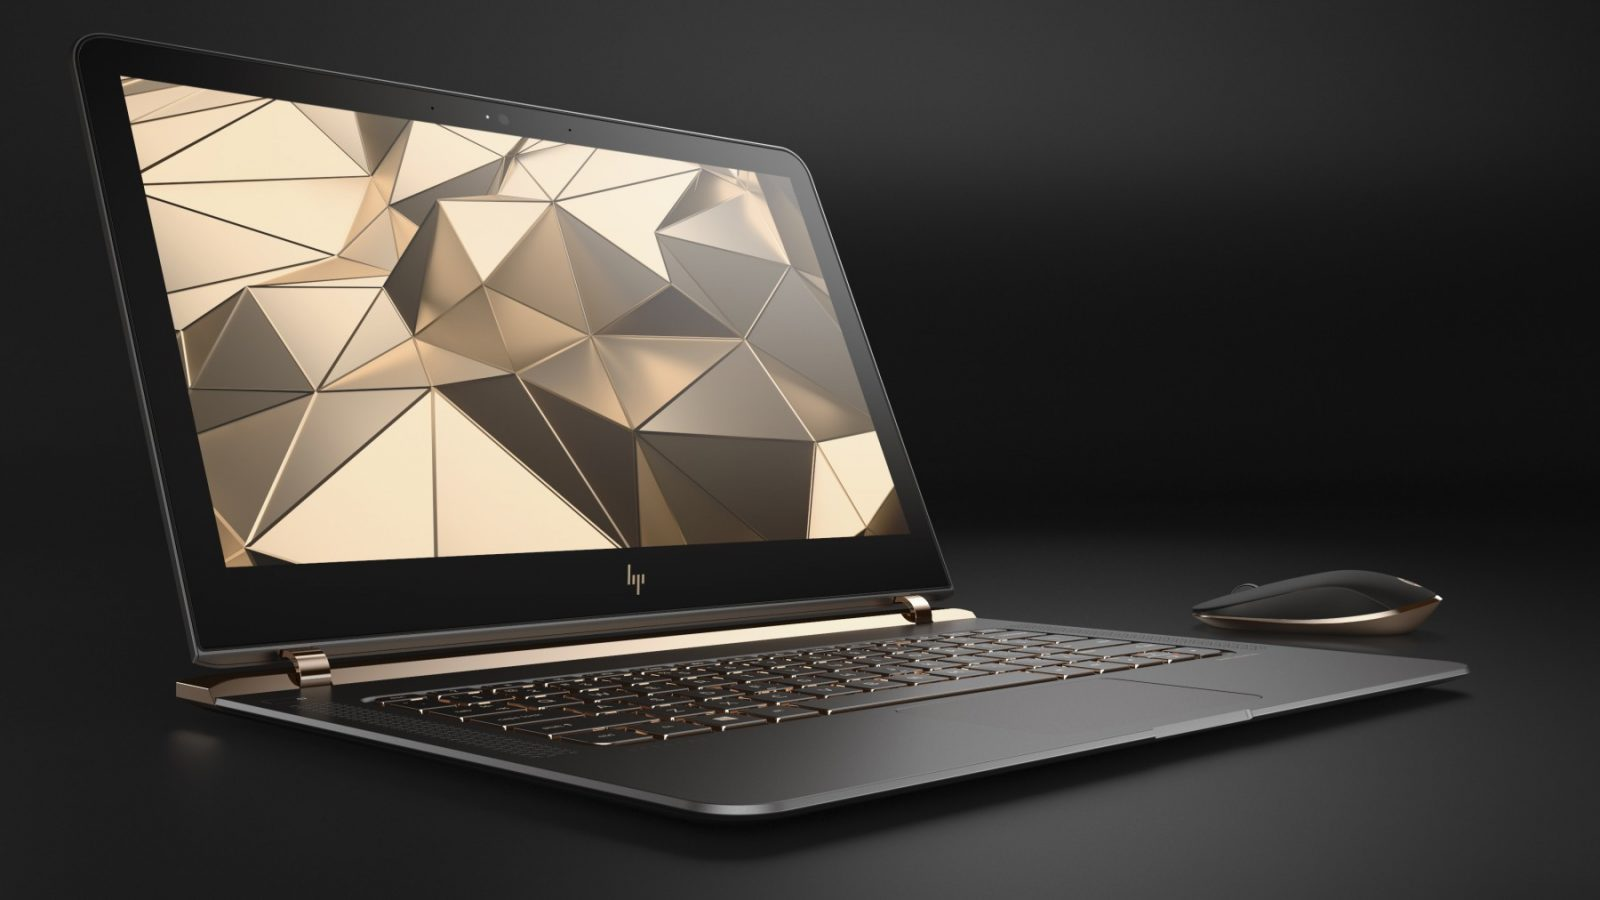 HP Spectre, the world's thinnest laptop officially launched